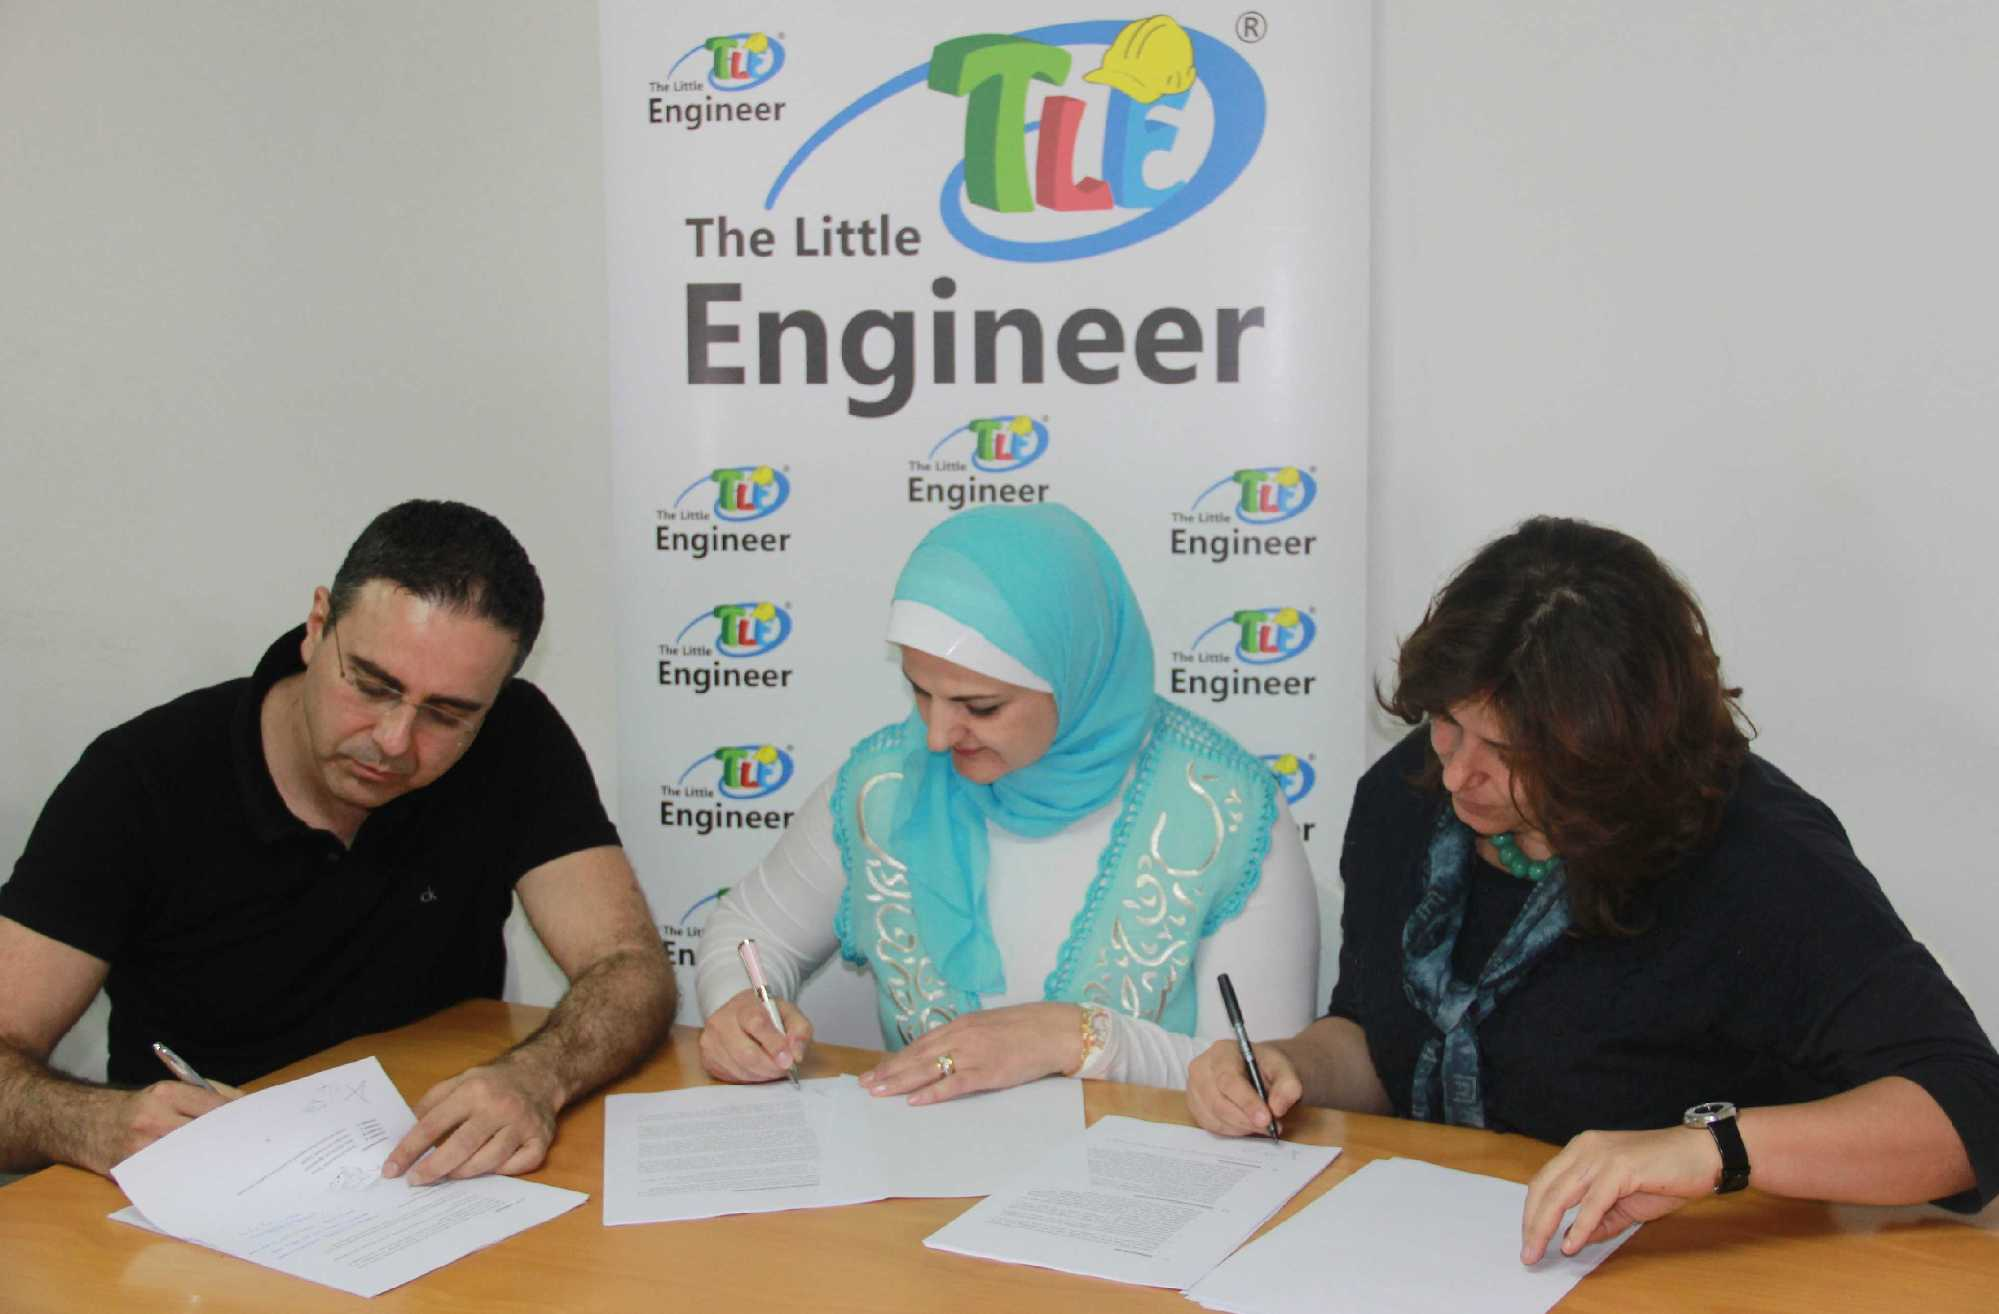 From Left: Mohammad Shihan, Raida Abu Issa, Rana El Chmaitelly